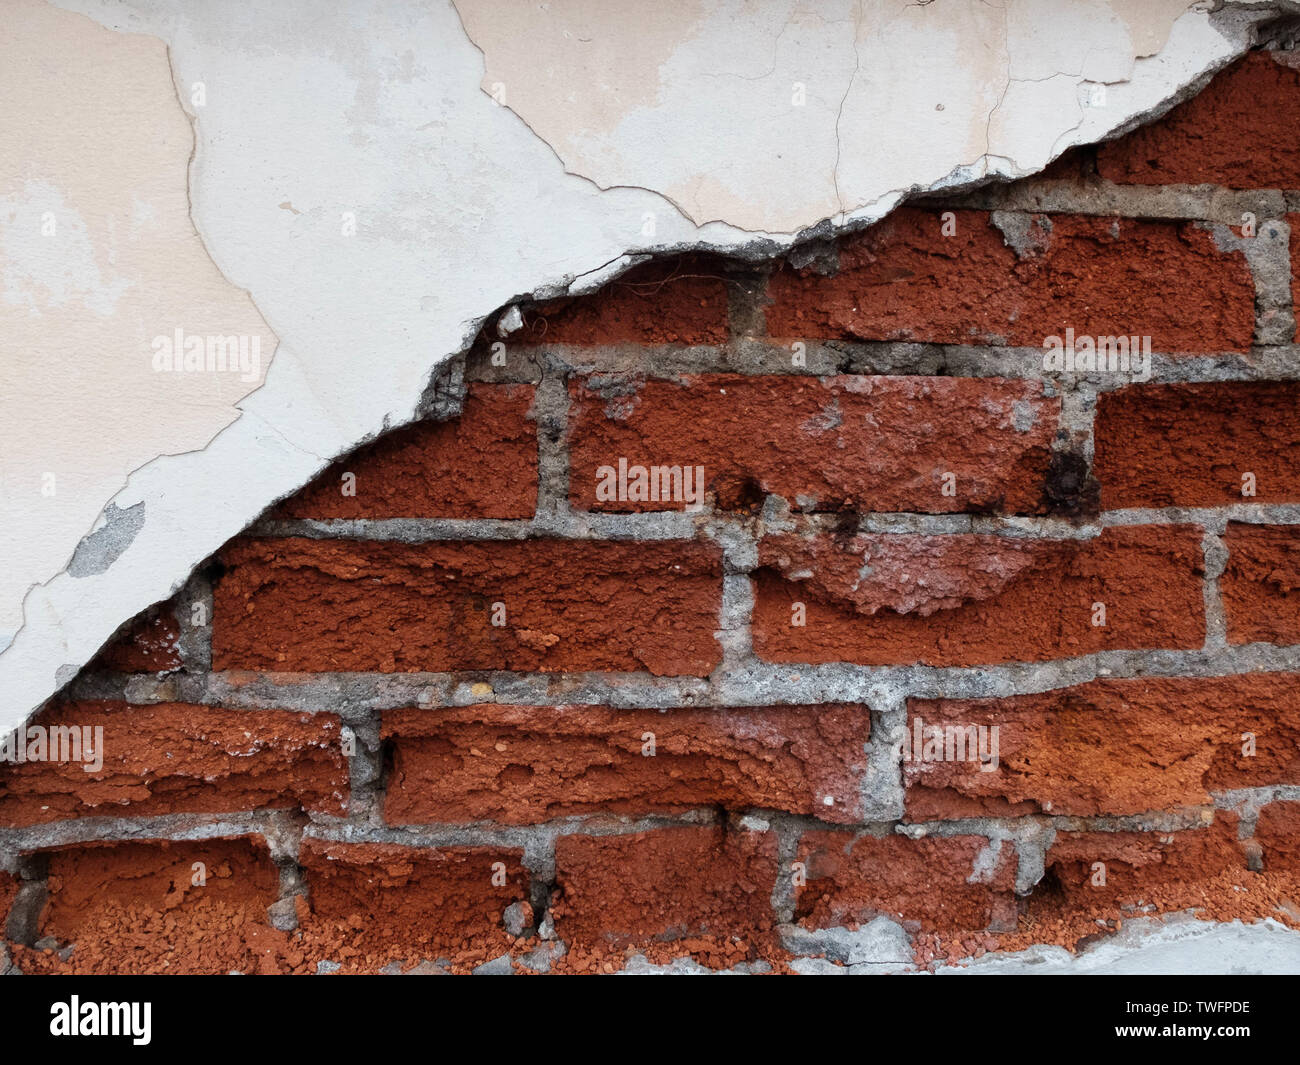 Decaying of erosion mossy red brick wall with remains of plaster of 18th century building - Stock Image